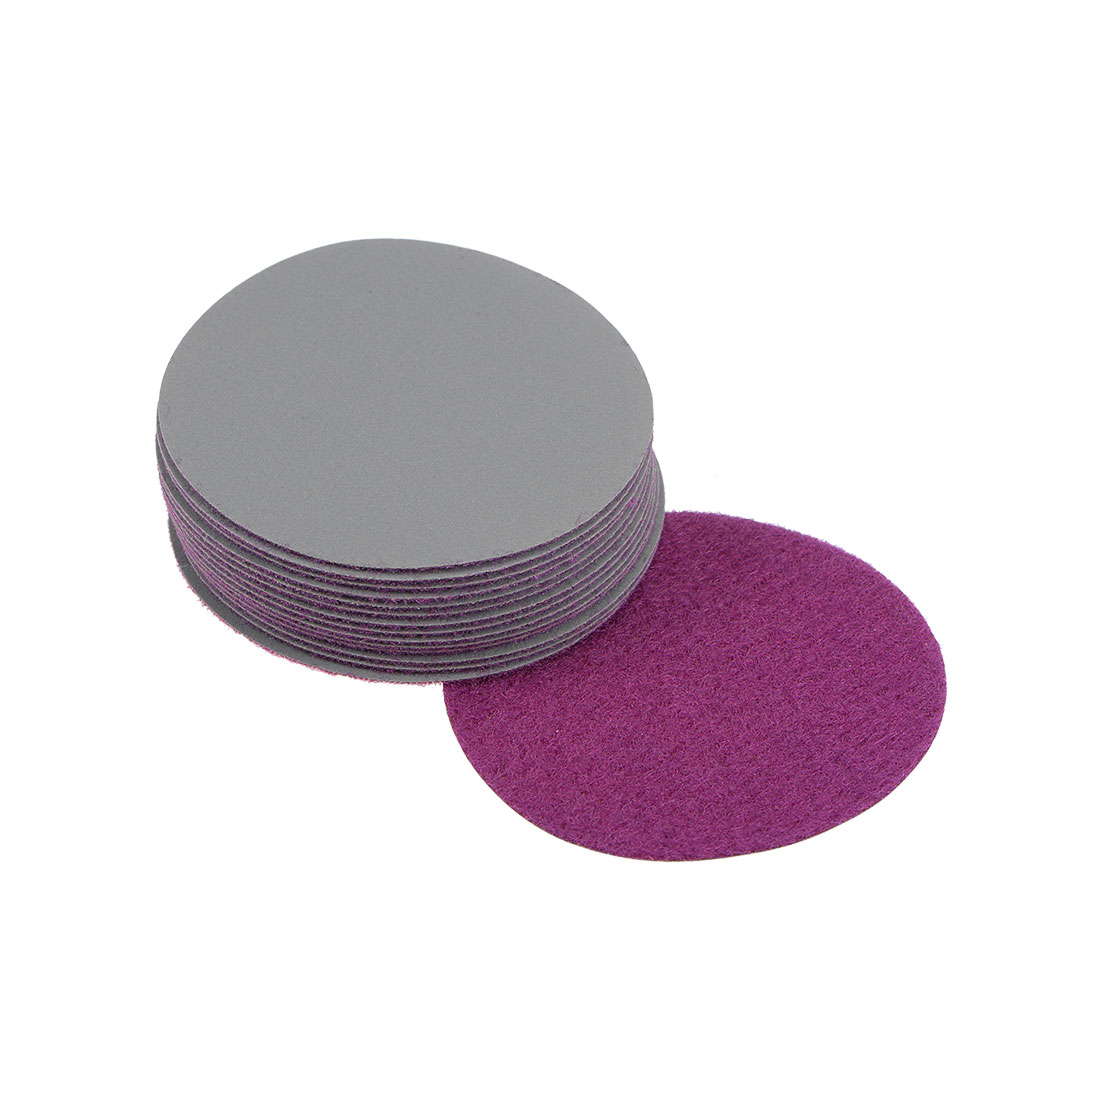 2 inch Wet Dry Discs 2000 Grit Hook and Loop Sanding Disc Silicon Carbide 15pcs